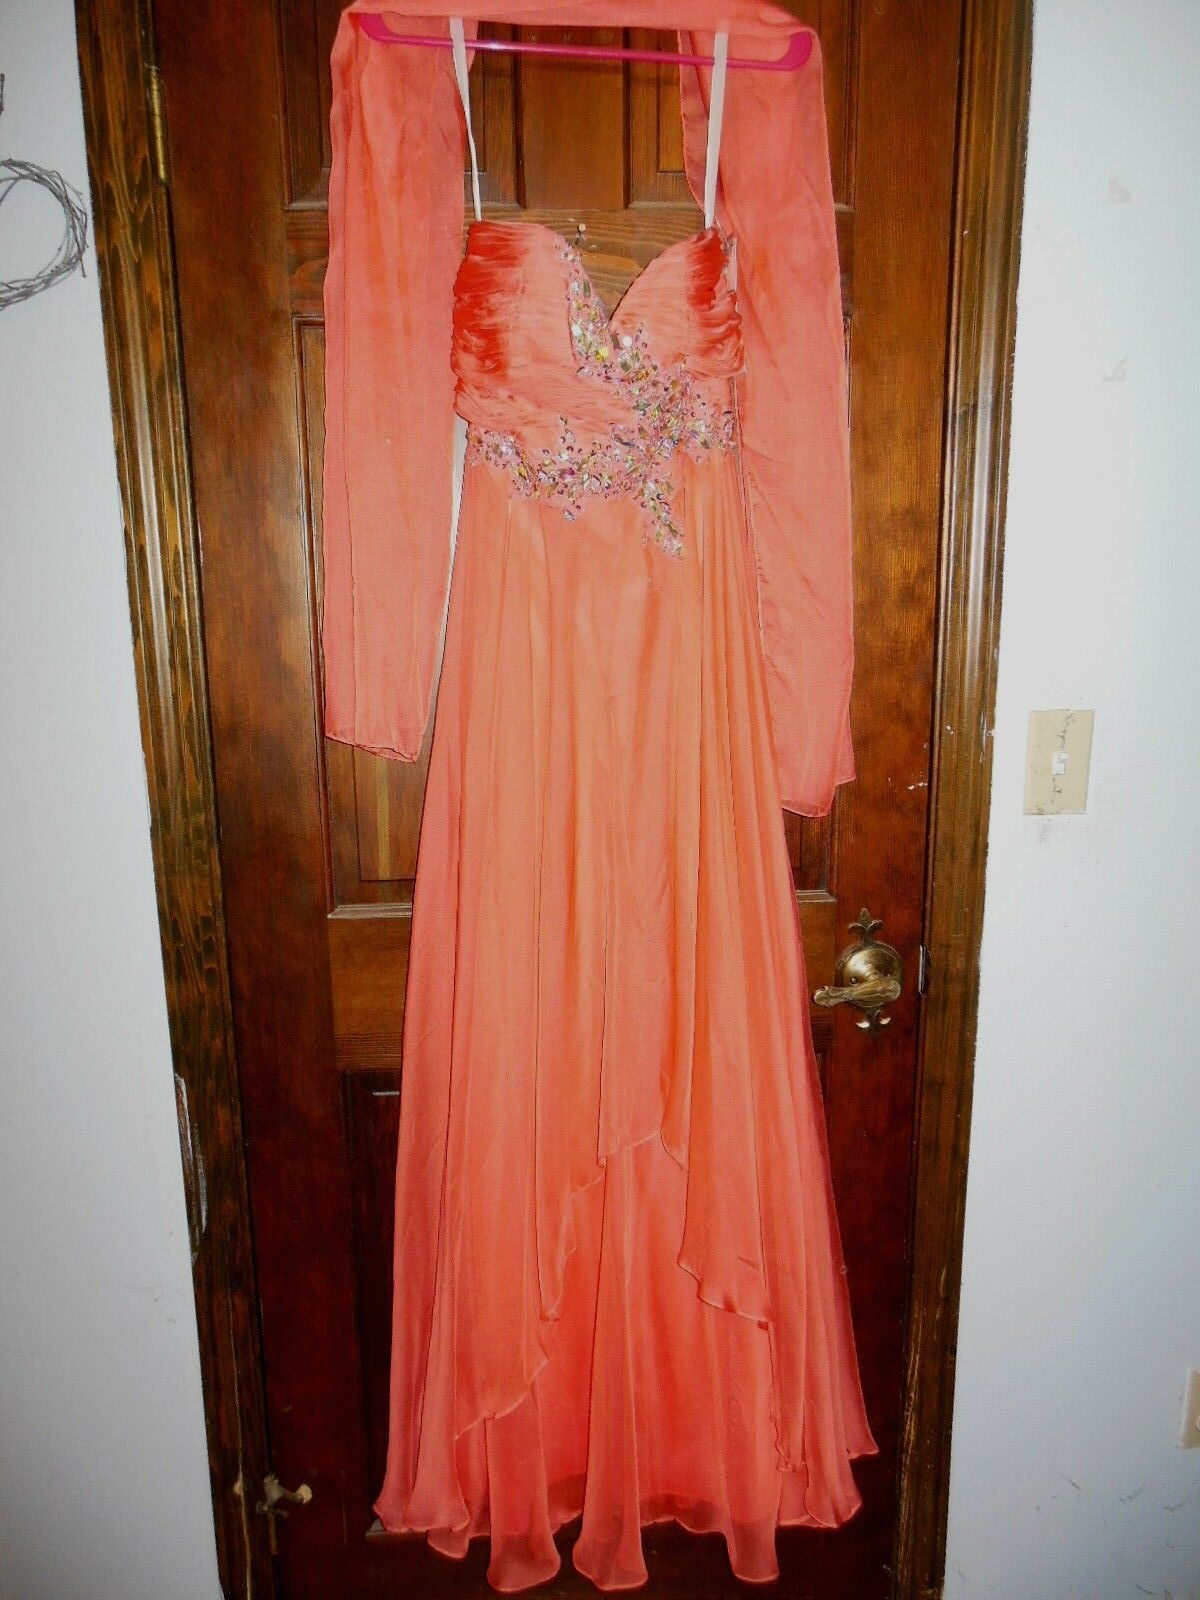 Full Length Sleeveless Prom Dress w Rhinestone Accents, Sz 4, New with Tags